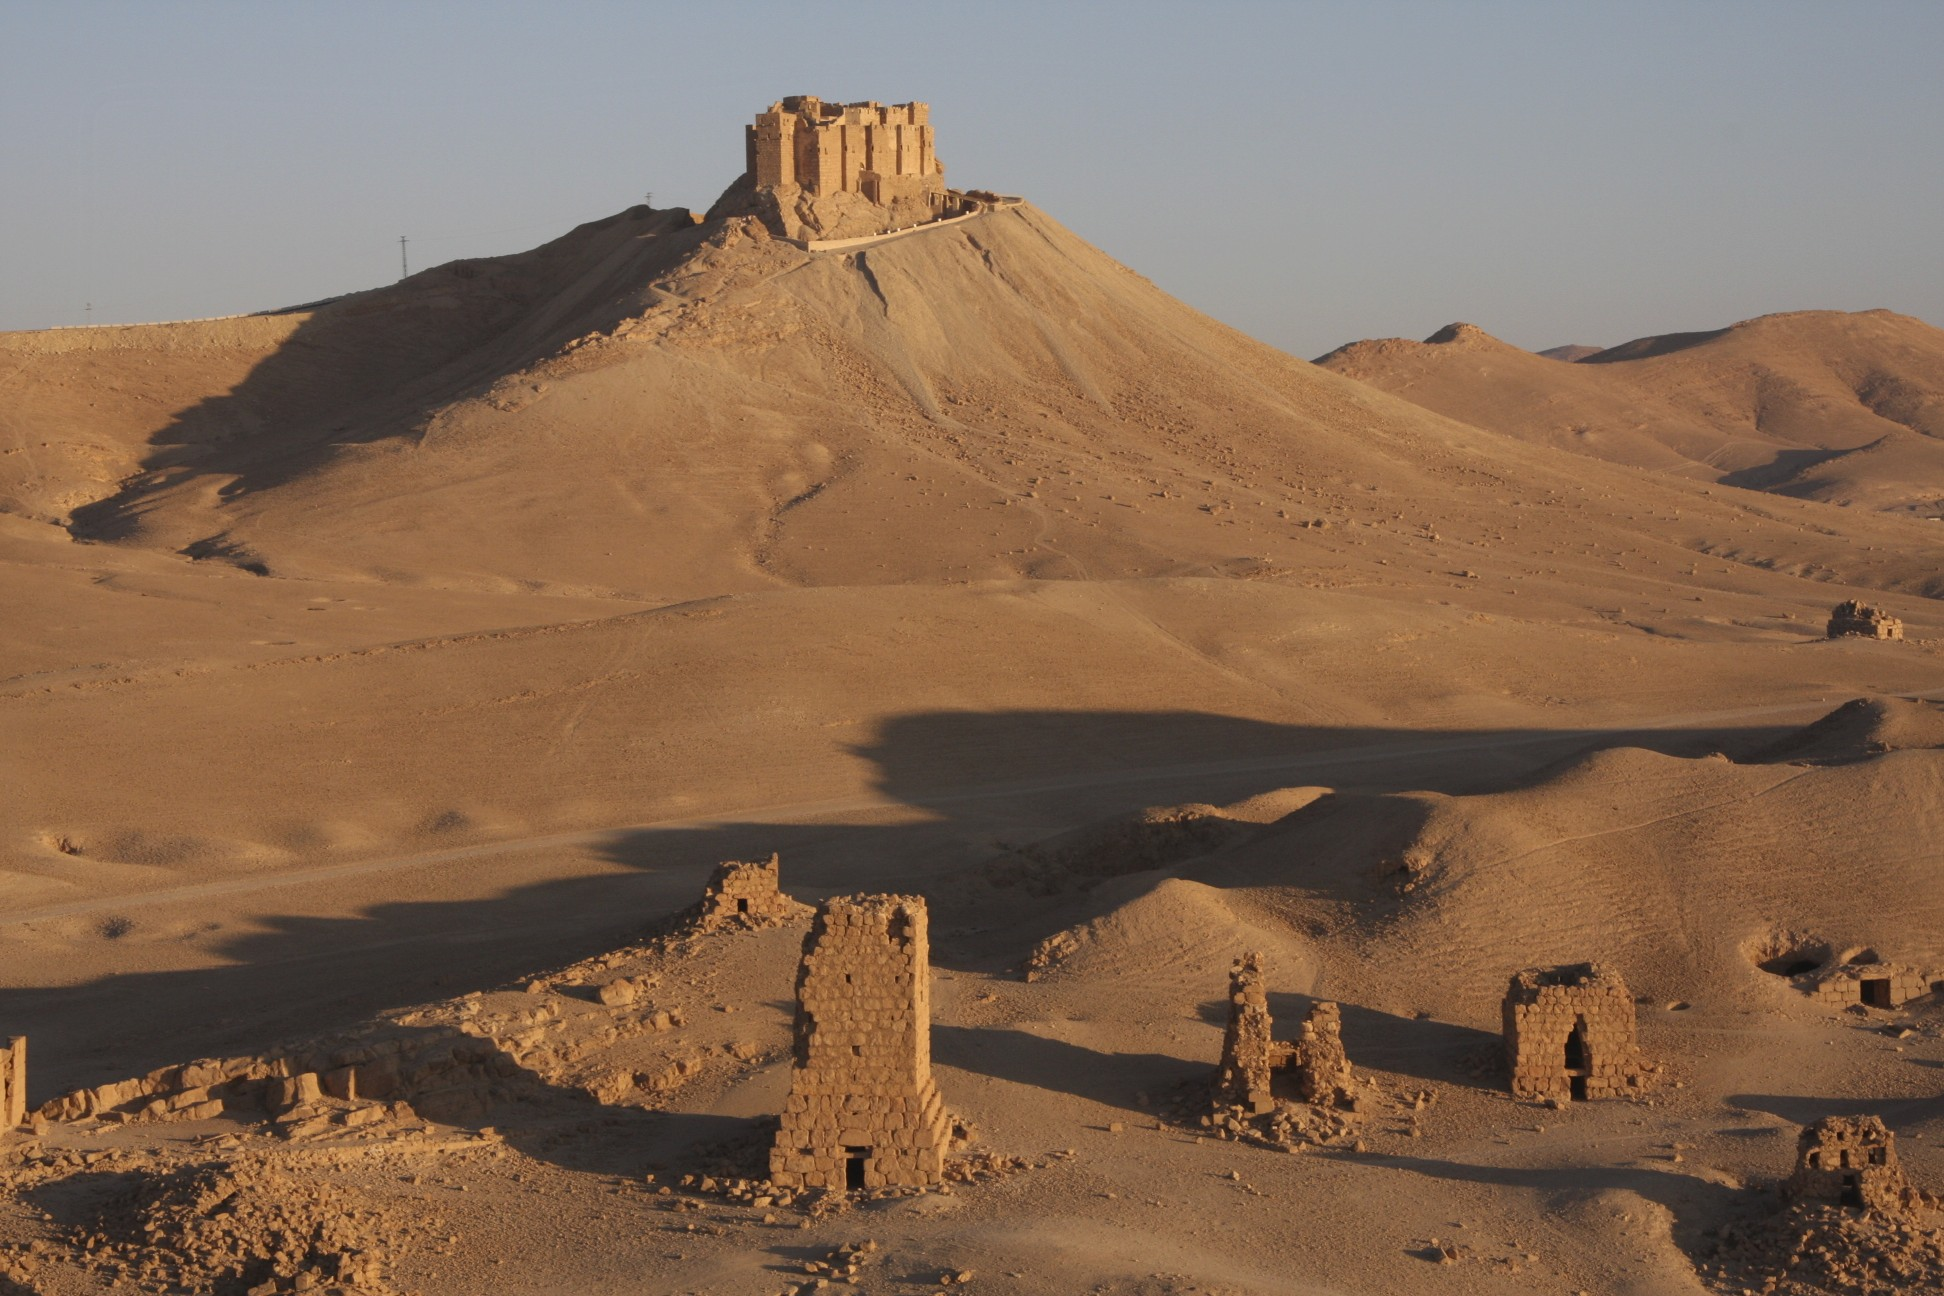 The citadel of Palmyra